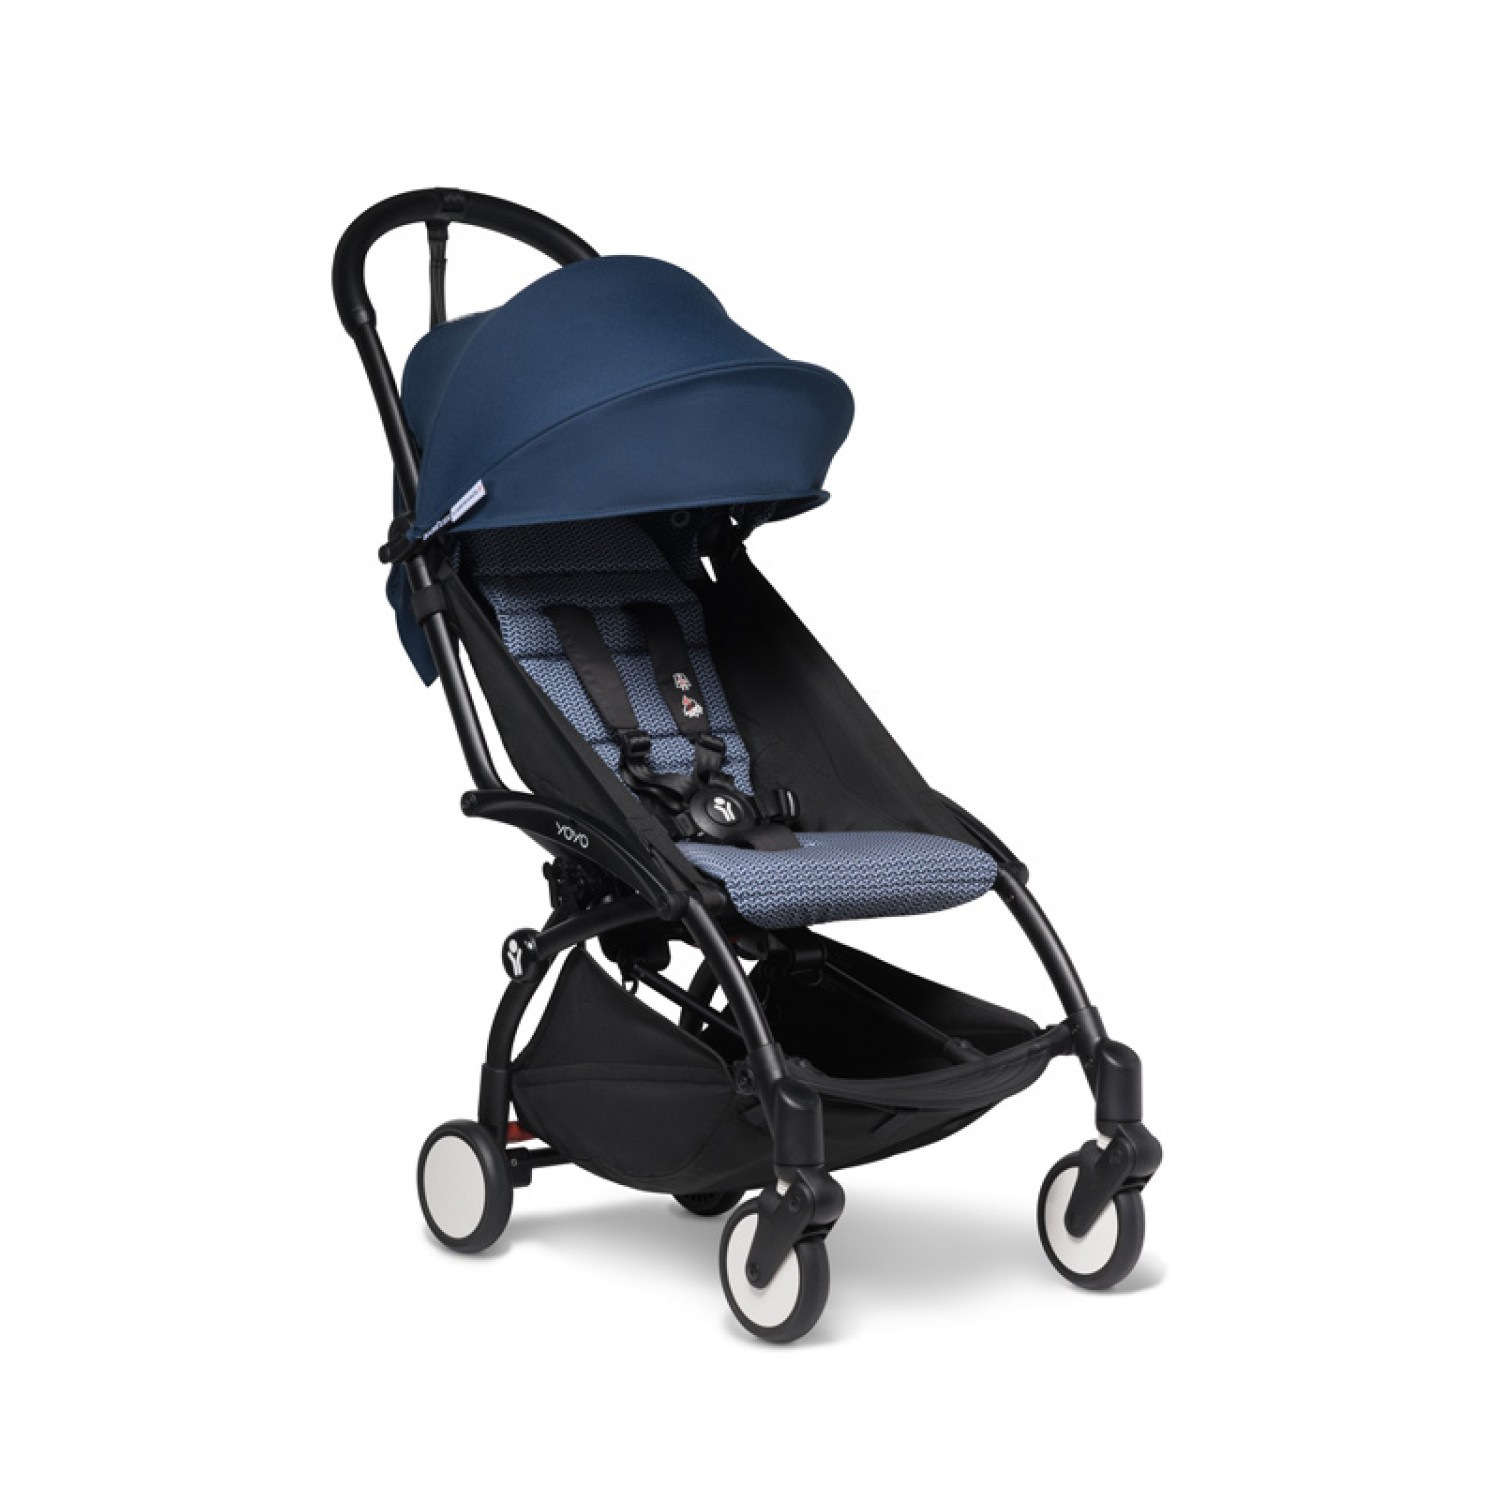 BABYZEN stroller YOYO2 6+ | Black Chassis Air France